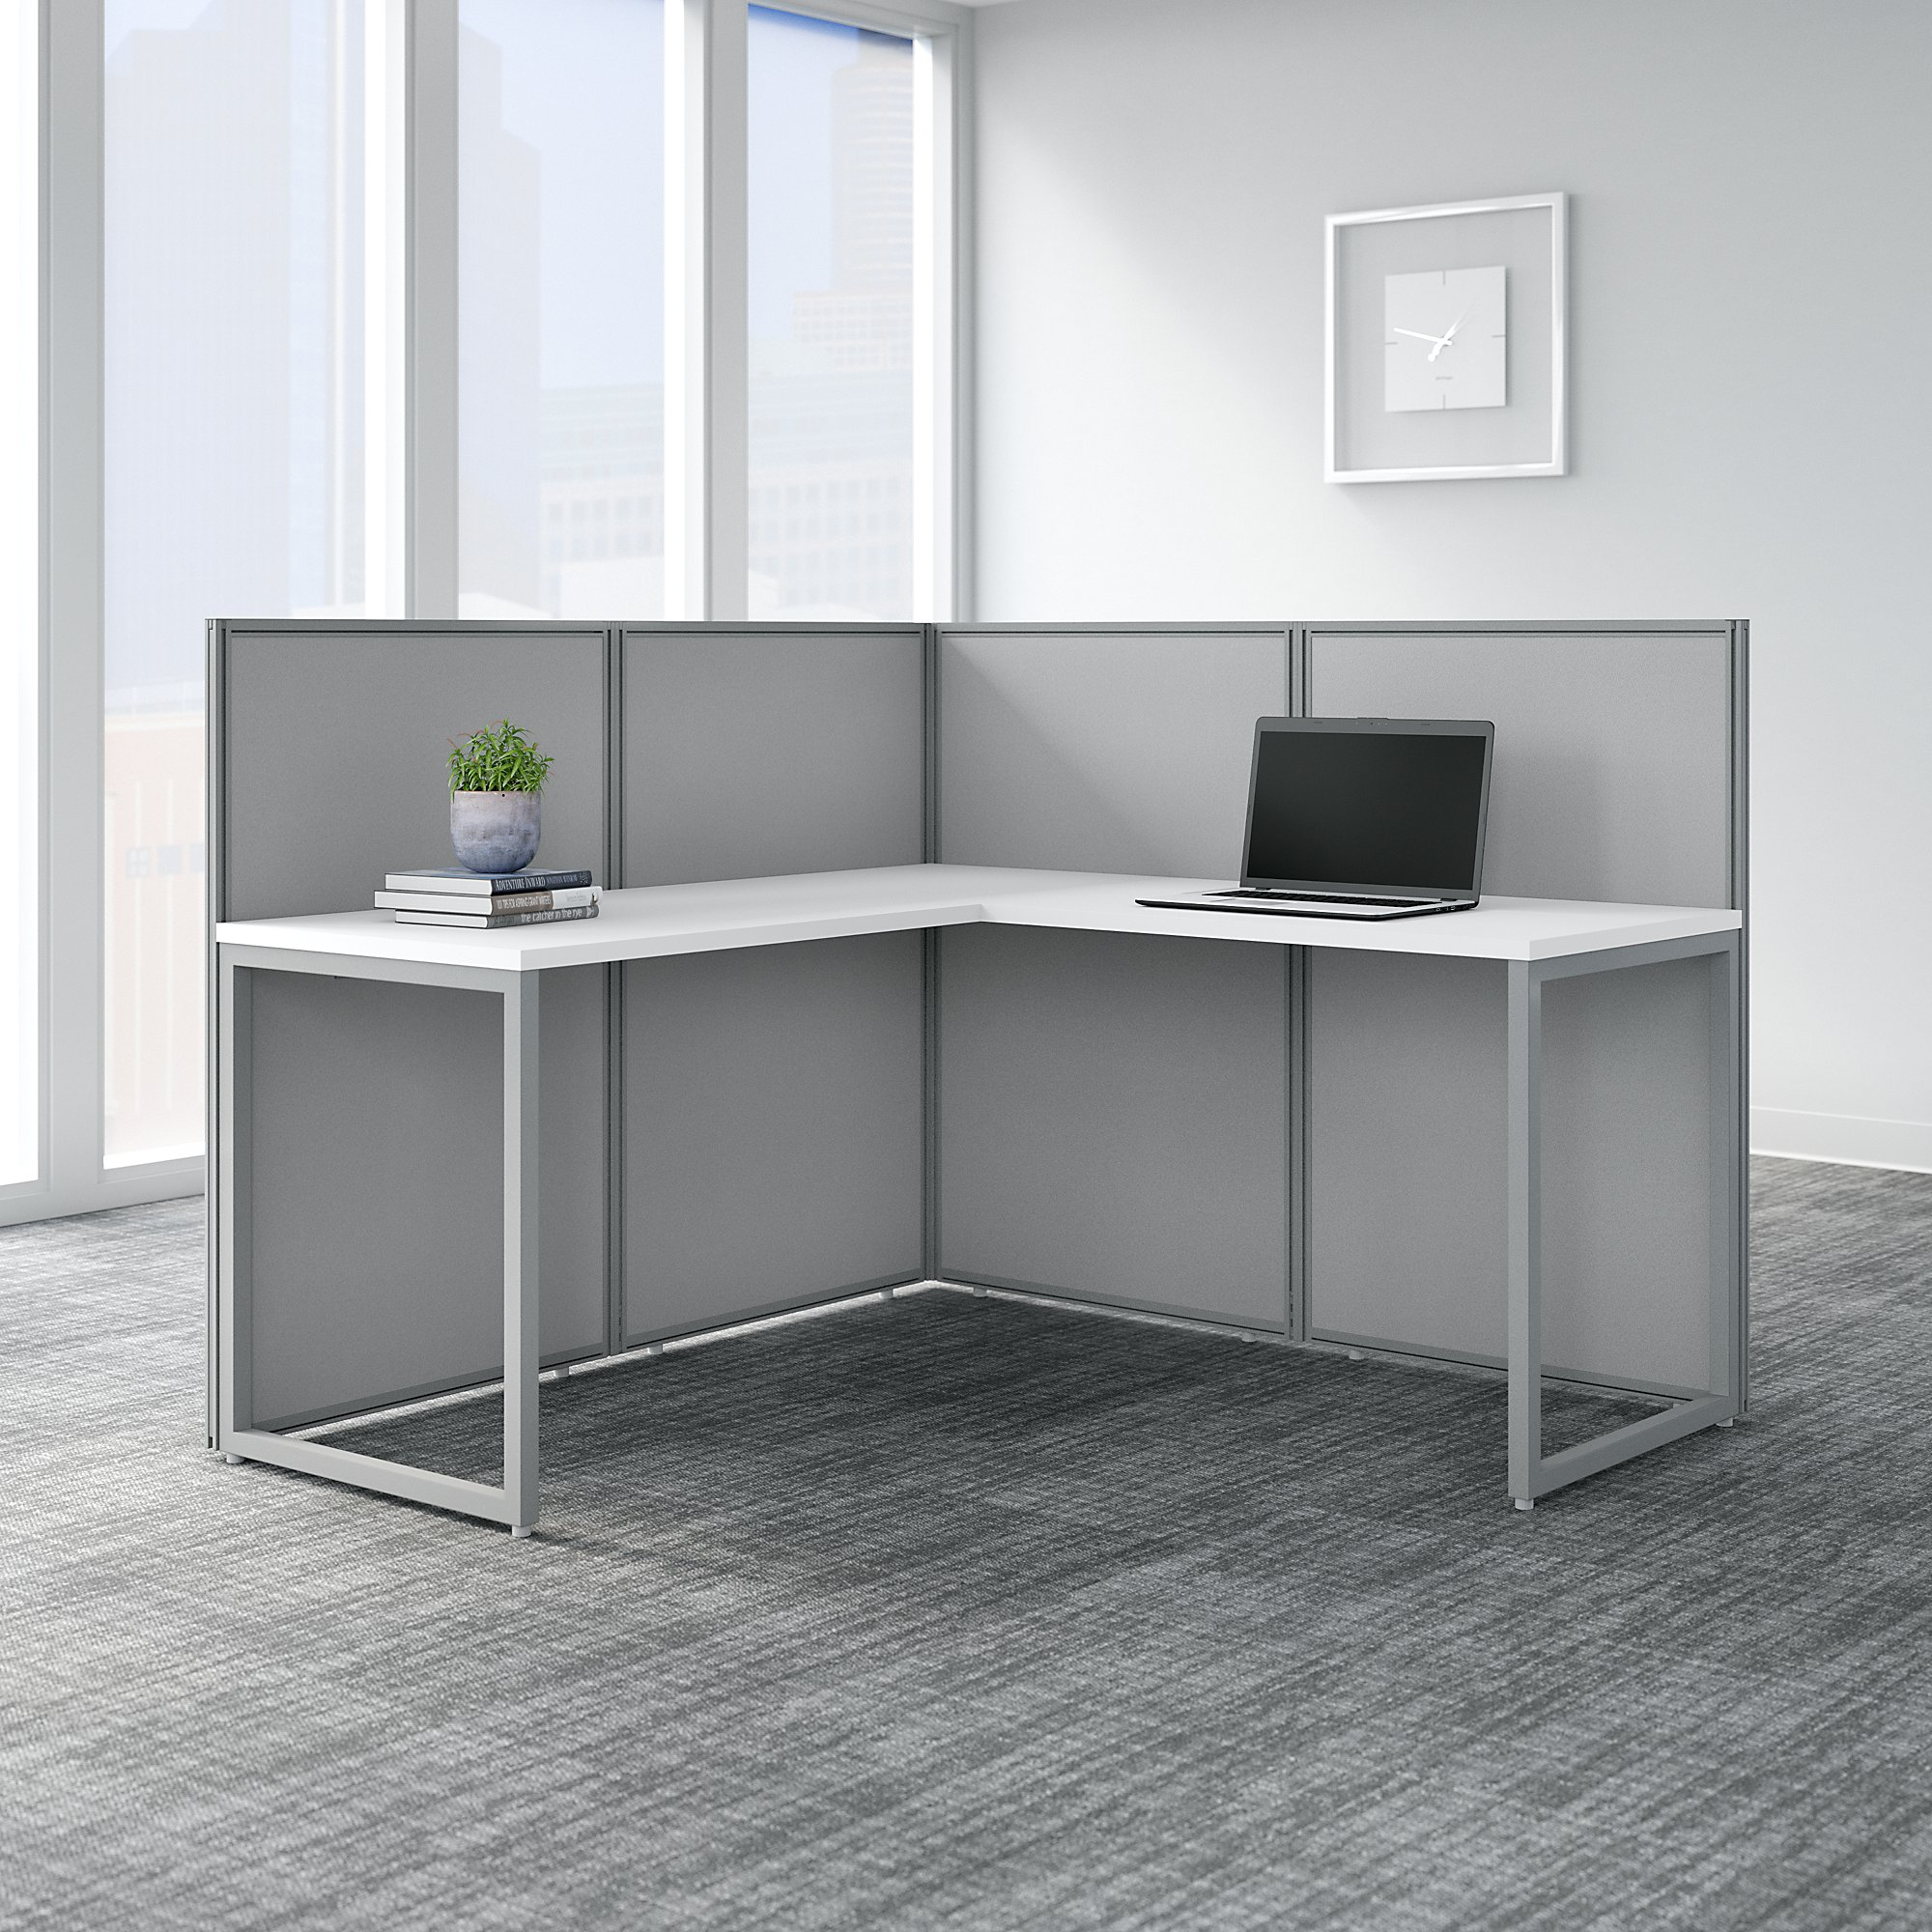 eod360wh-03k easy office cubicle